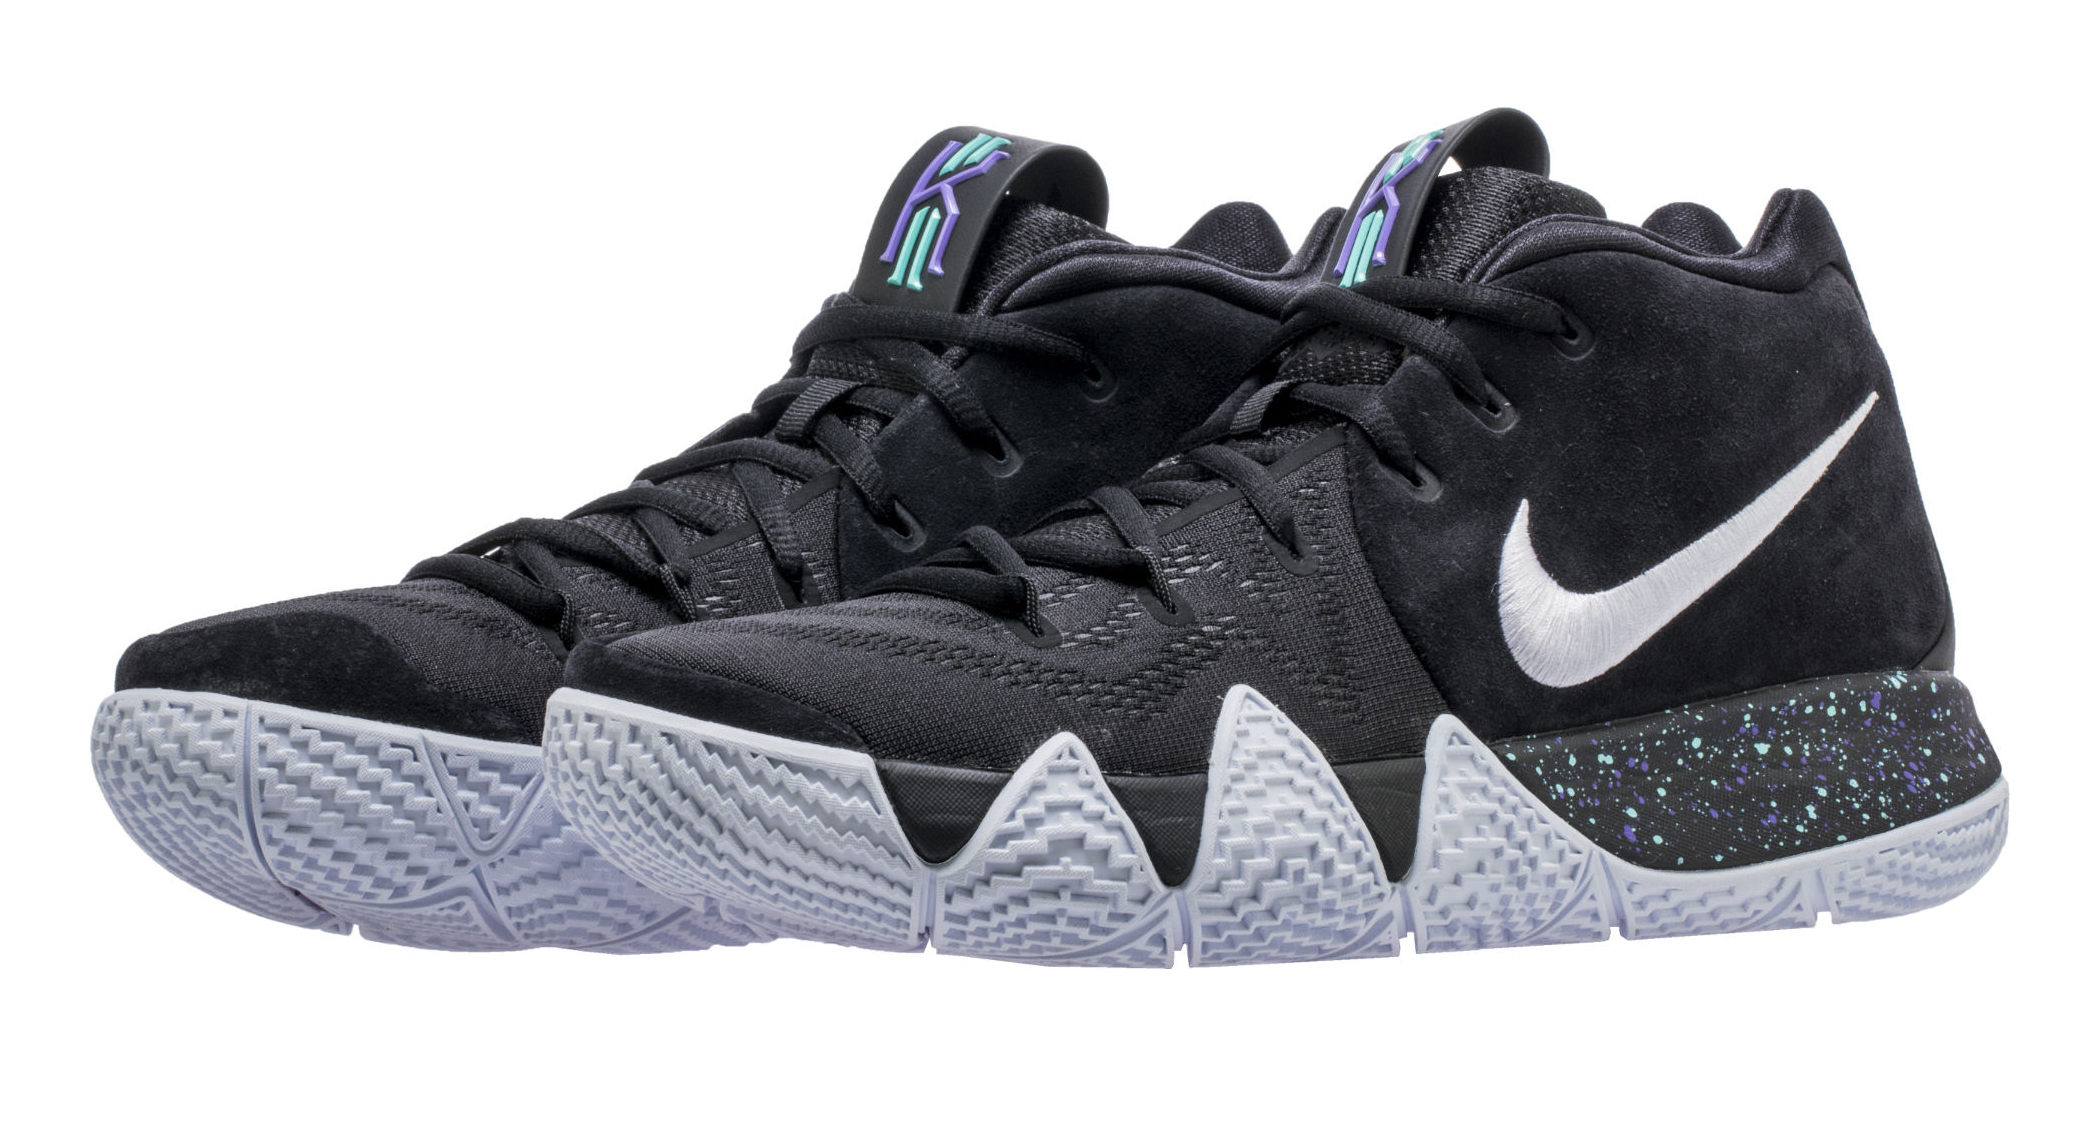 first rate 1b8dc dbe6c Detailed Look At The New Nike Kyrie 4 Black White ...